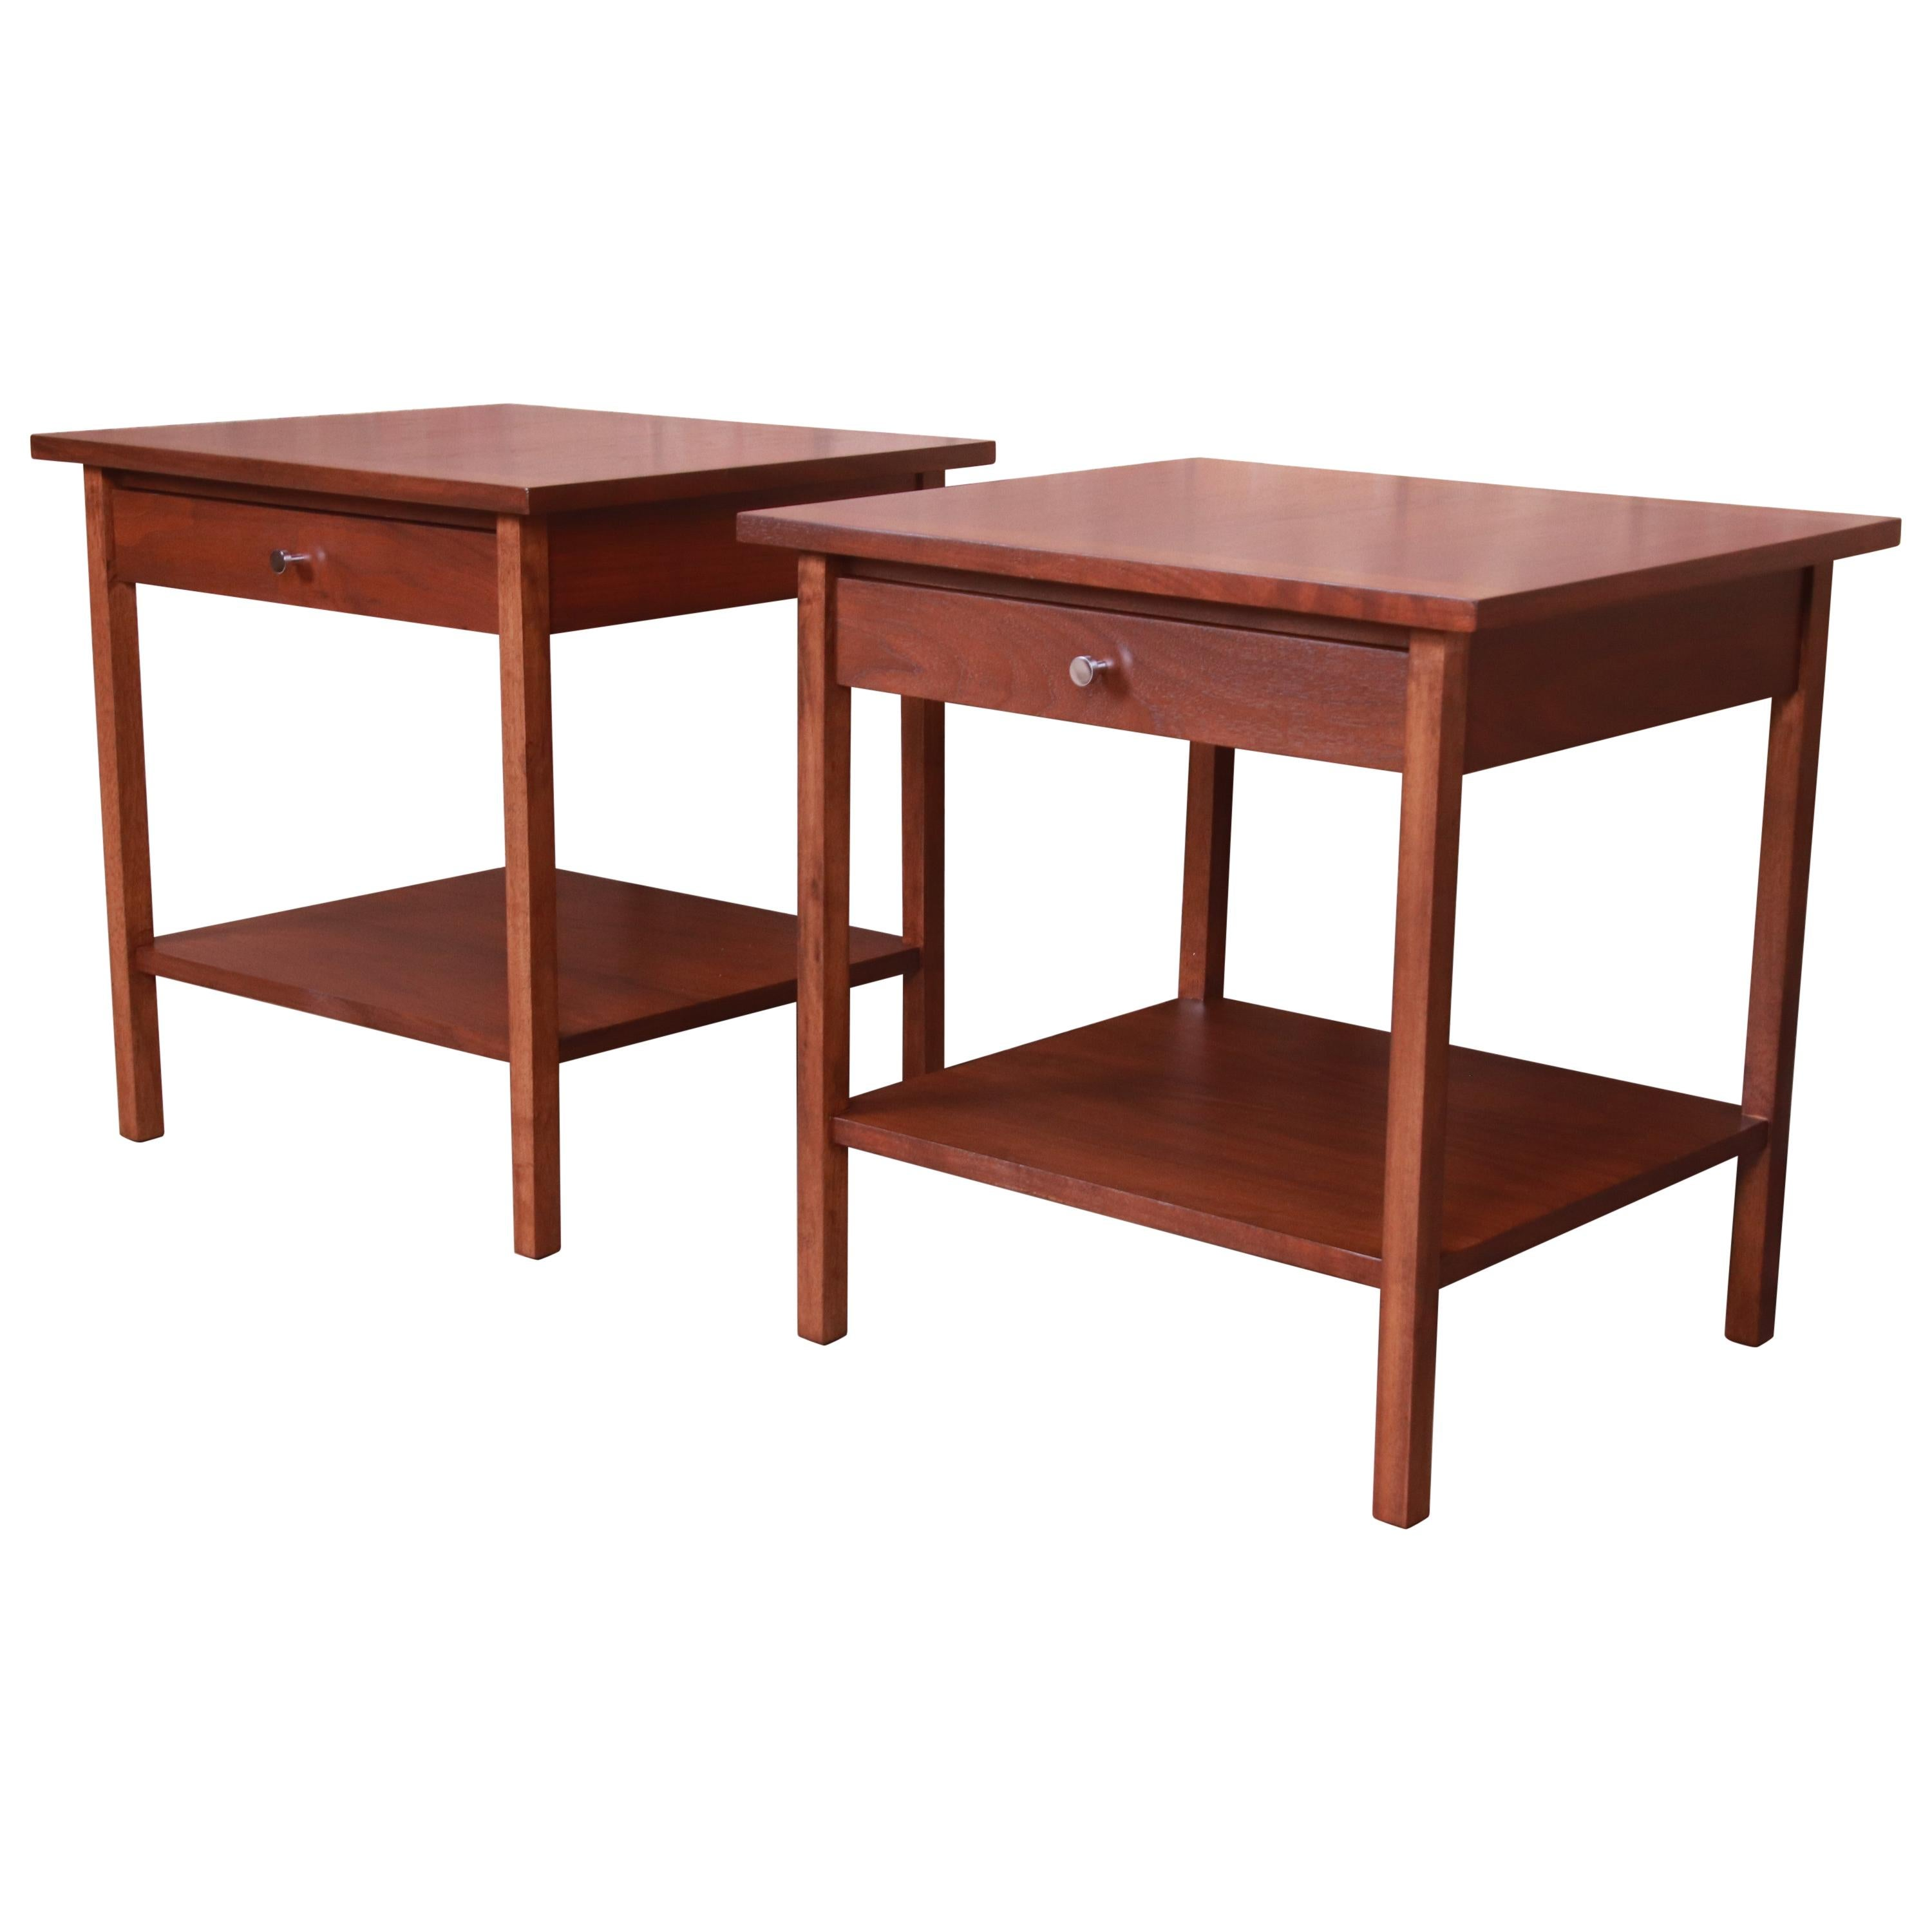 Paul McCobb Mid-Century Modern Walnut Nightstands or Side Tables, Refinished